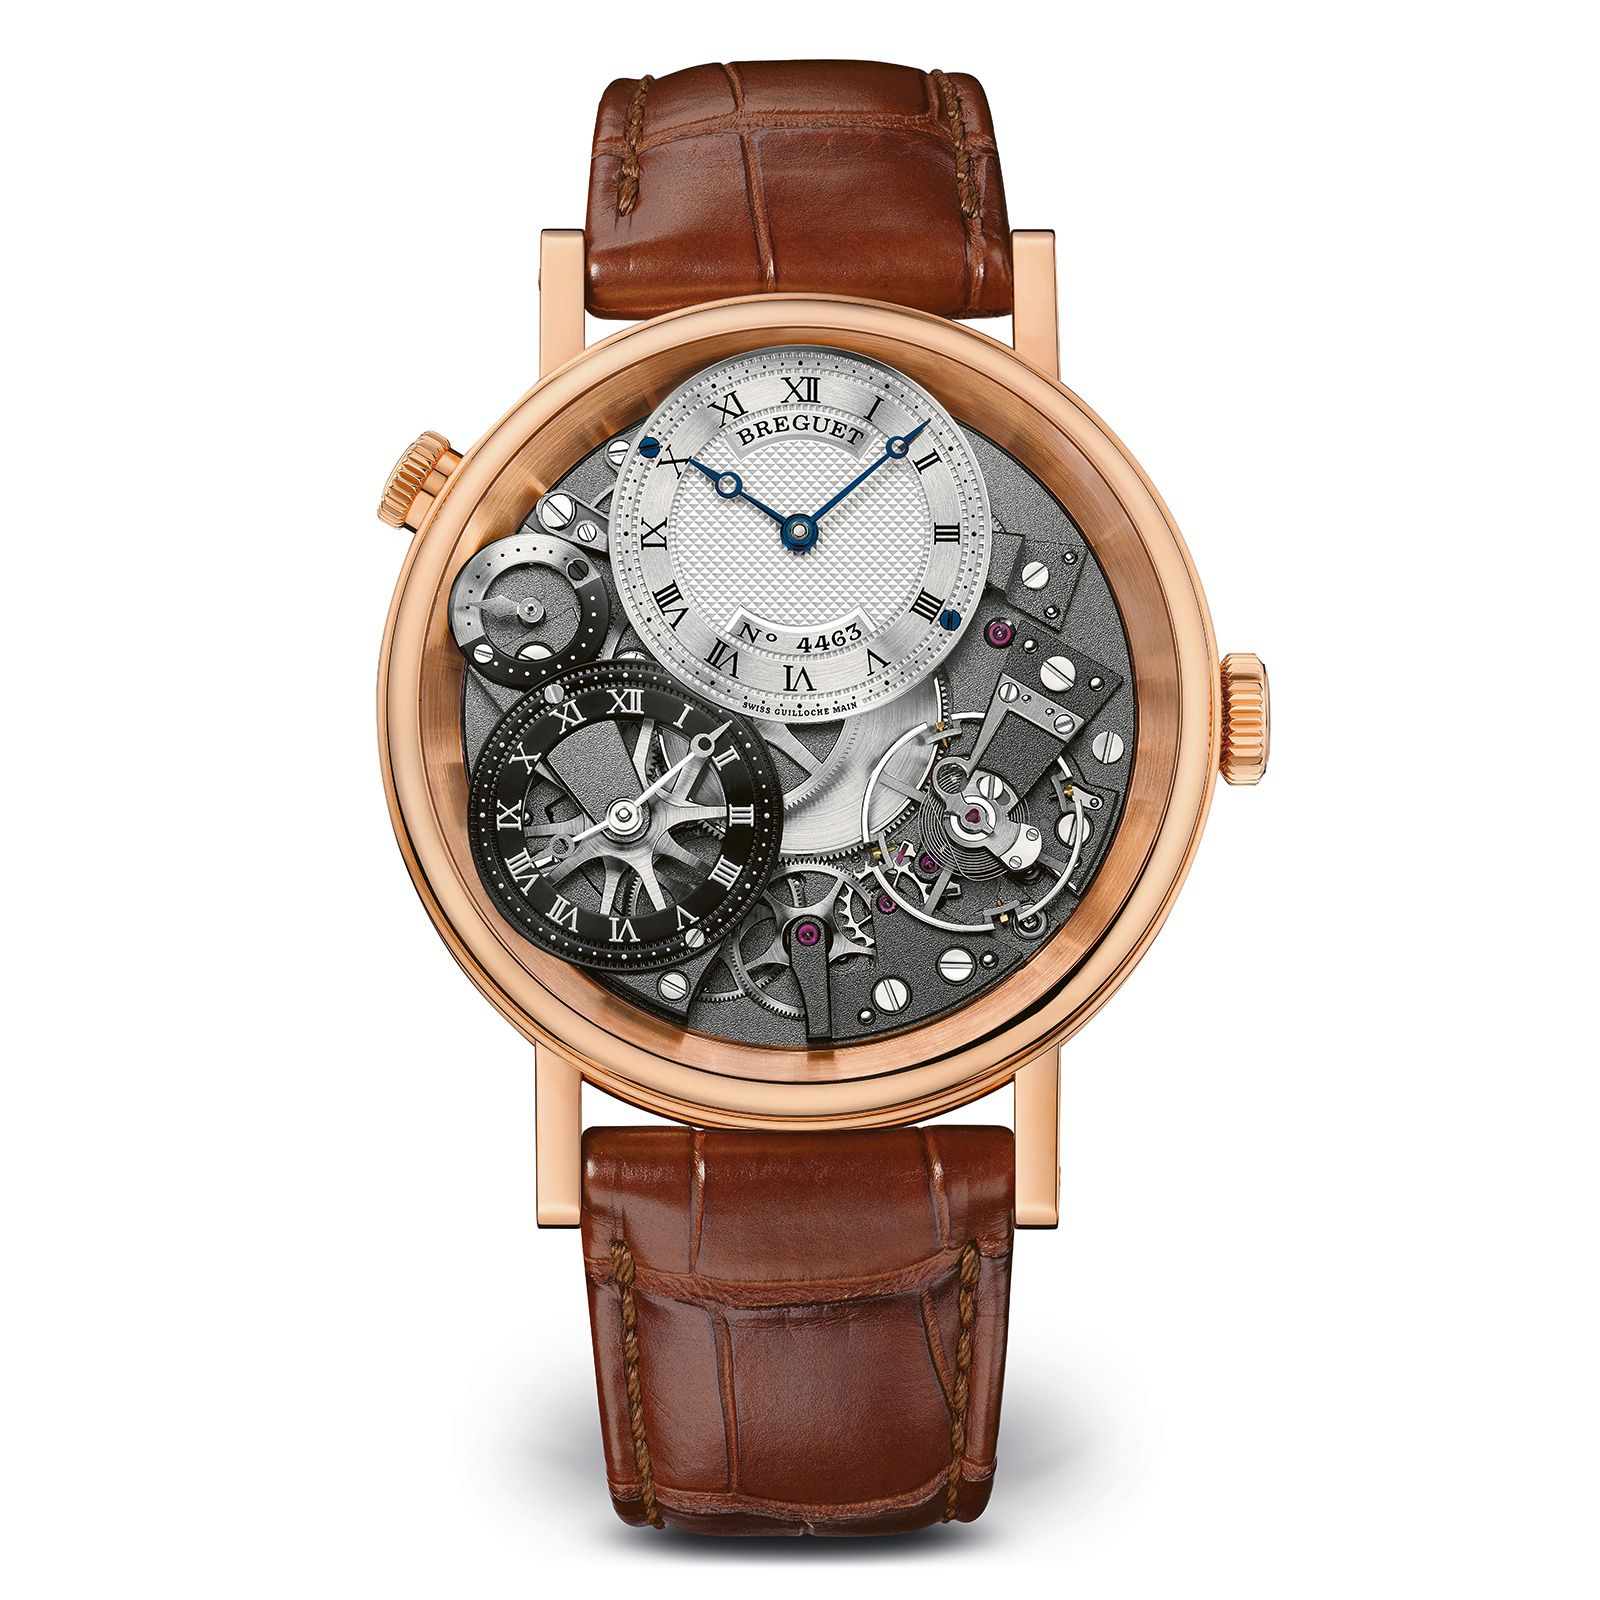 Breguet_Tradition.jpg